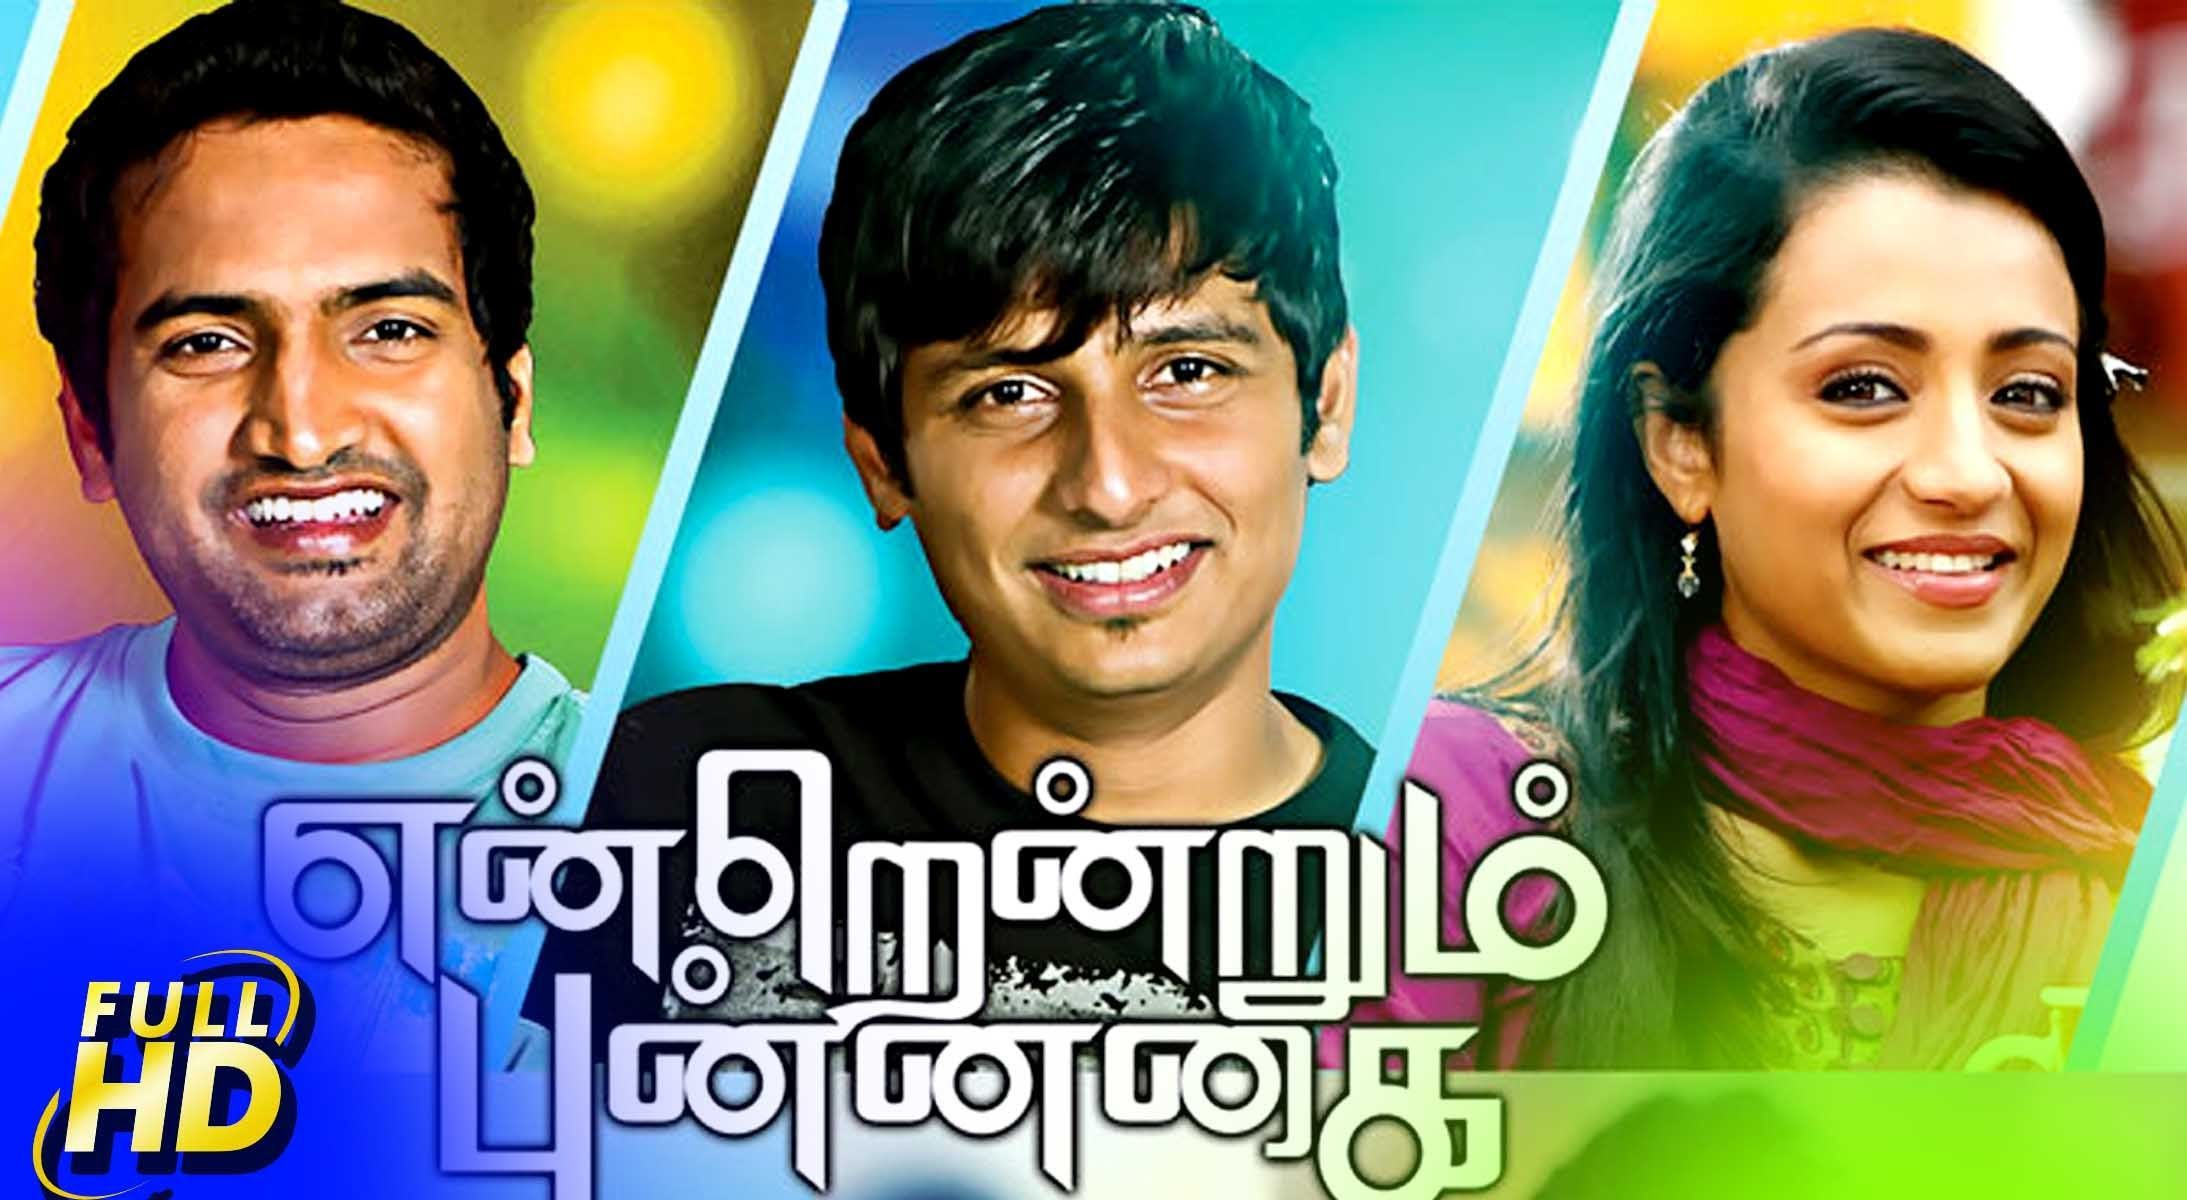 Tamil New Movie New Release Endrendrum Punnagai Latest Tamil Movies N